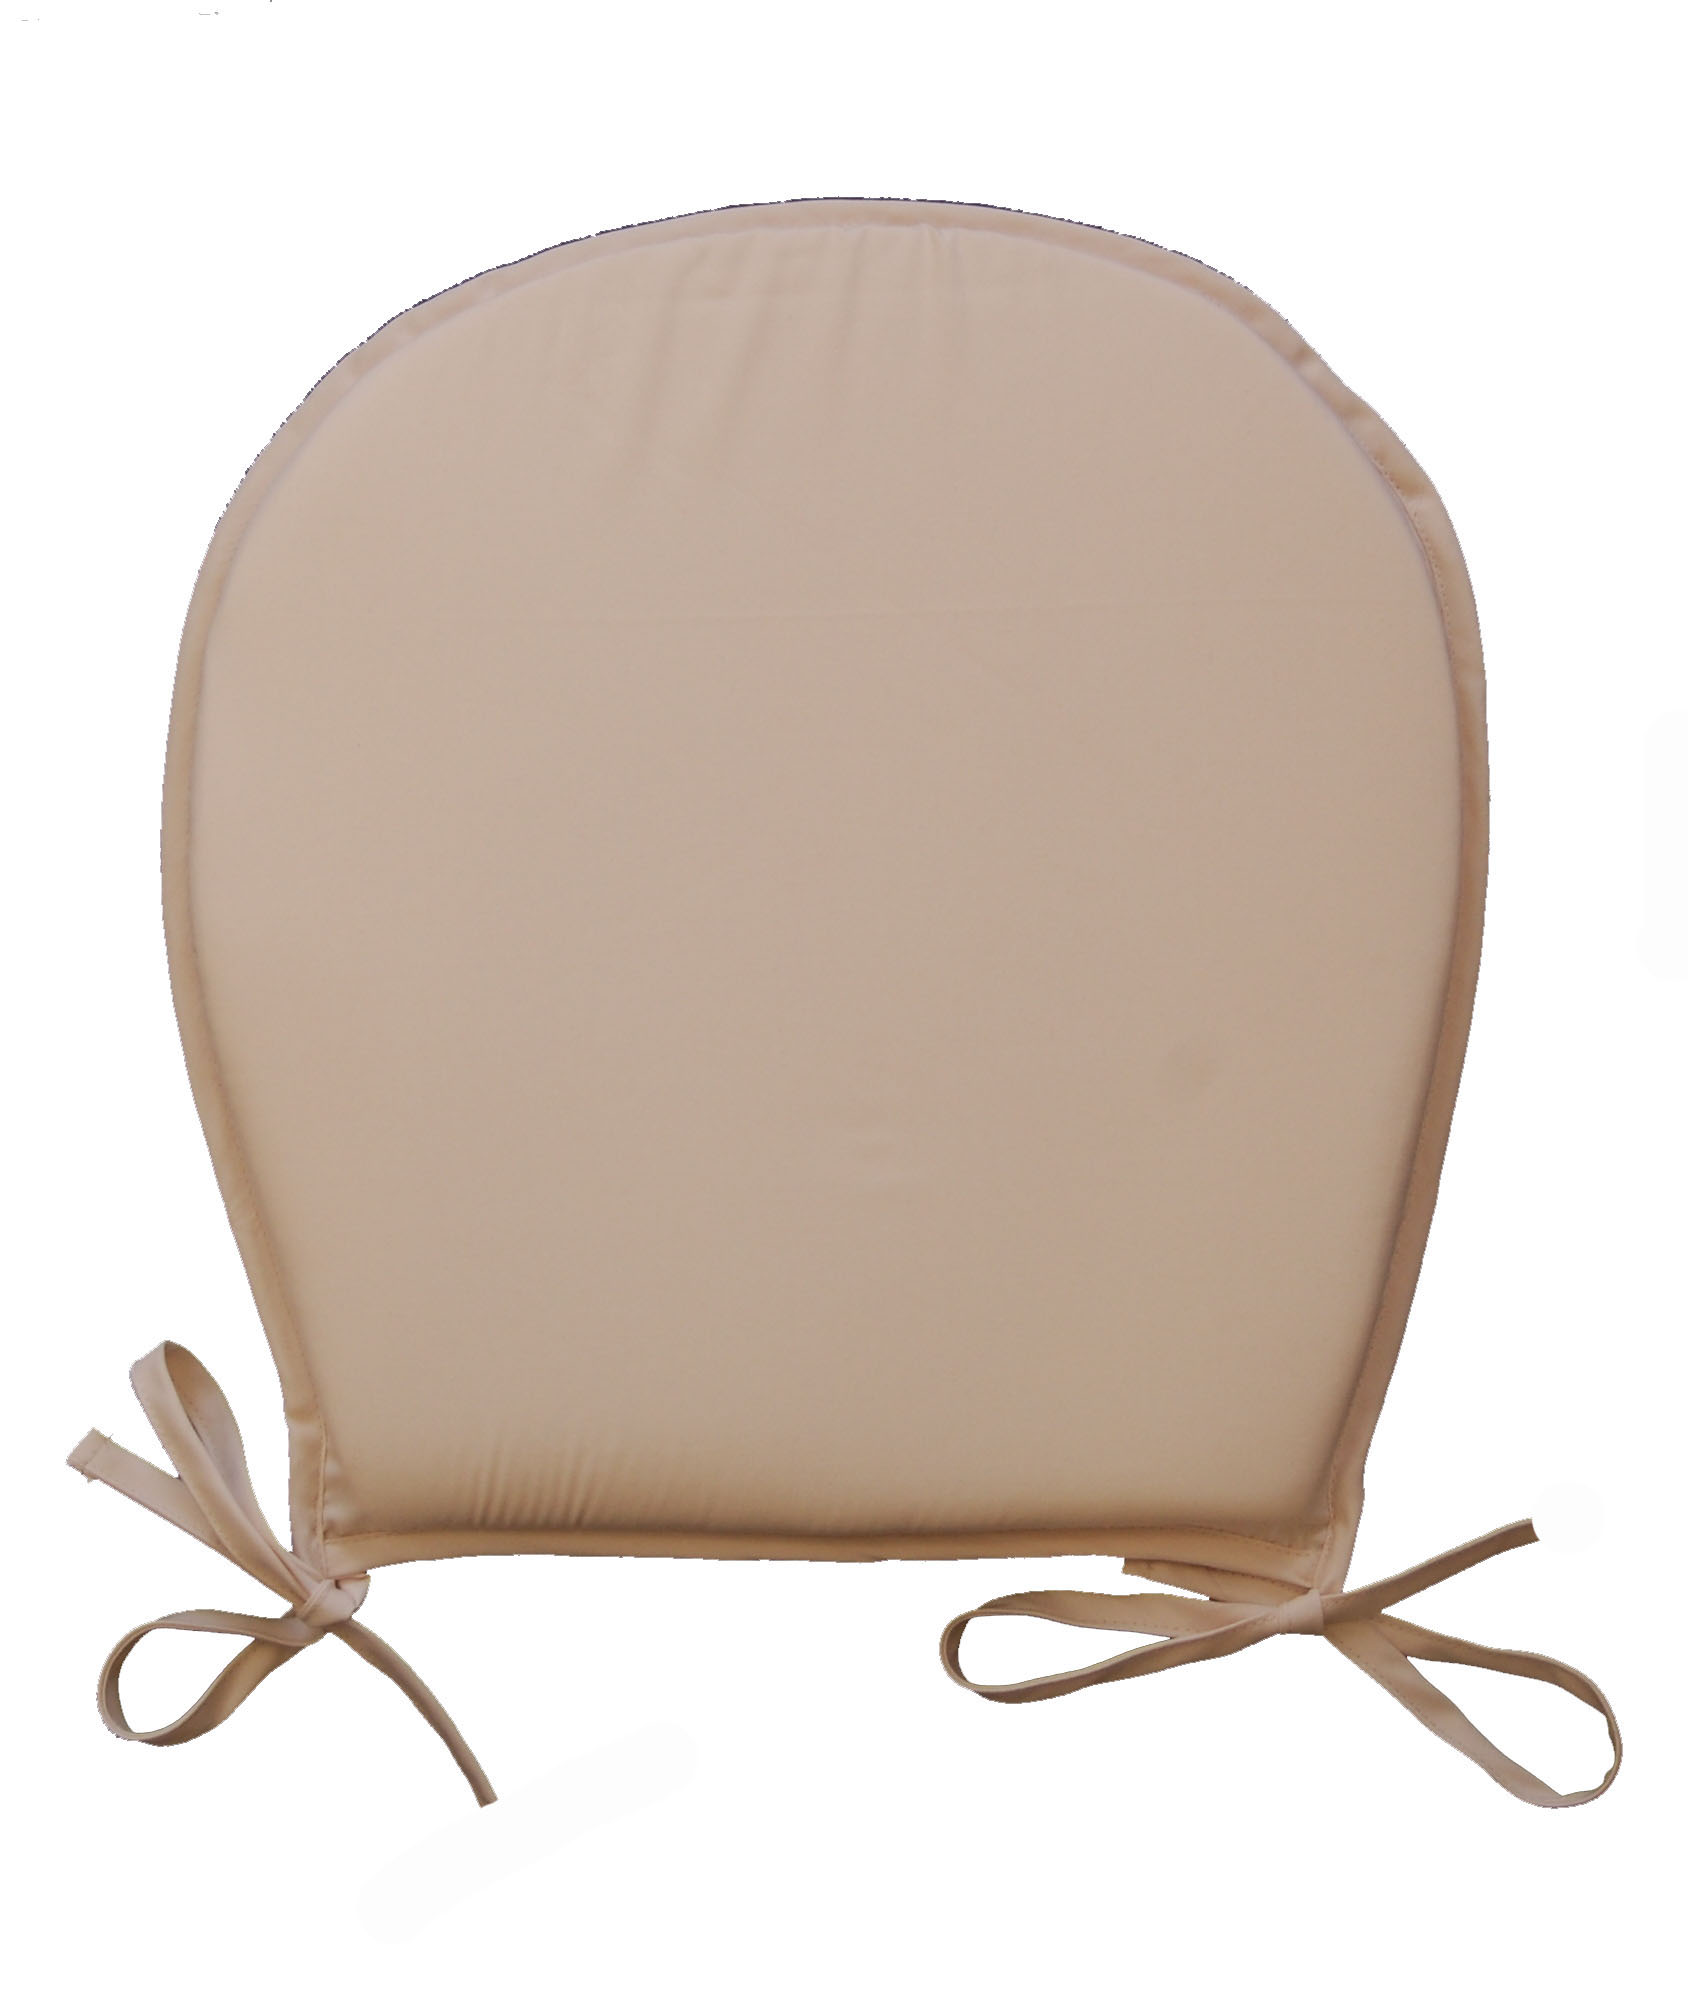 Kitchen Chairs Cushions For Kitchen Chairs : kitchen chair seat pad cream beige stone from kitchenchairstrends.blogspot.com size 1688 x 2000 jpeg 189kB